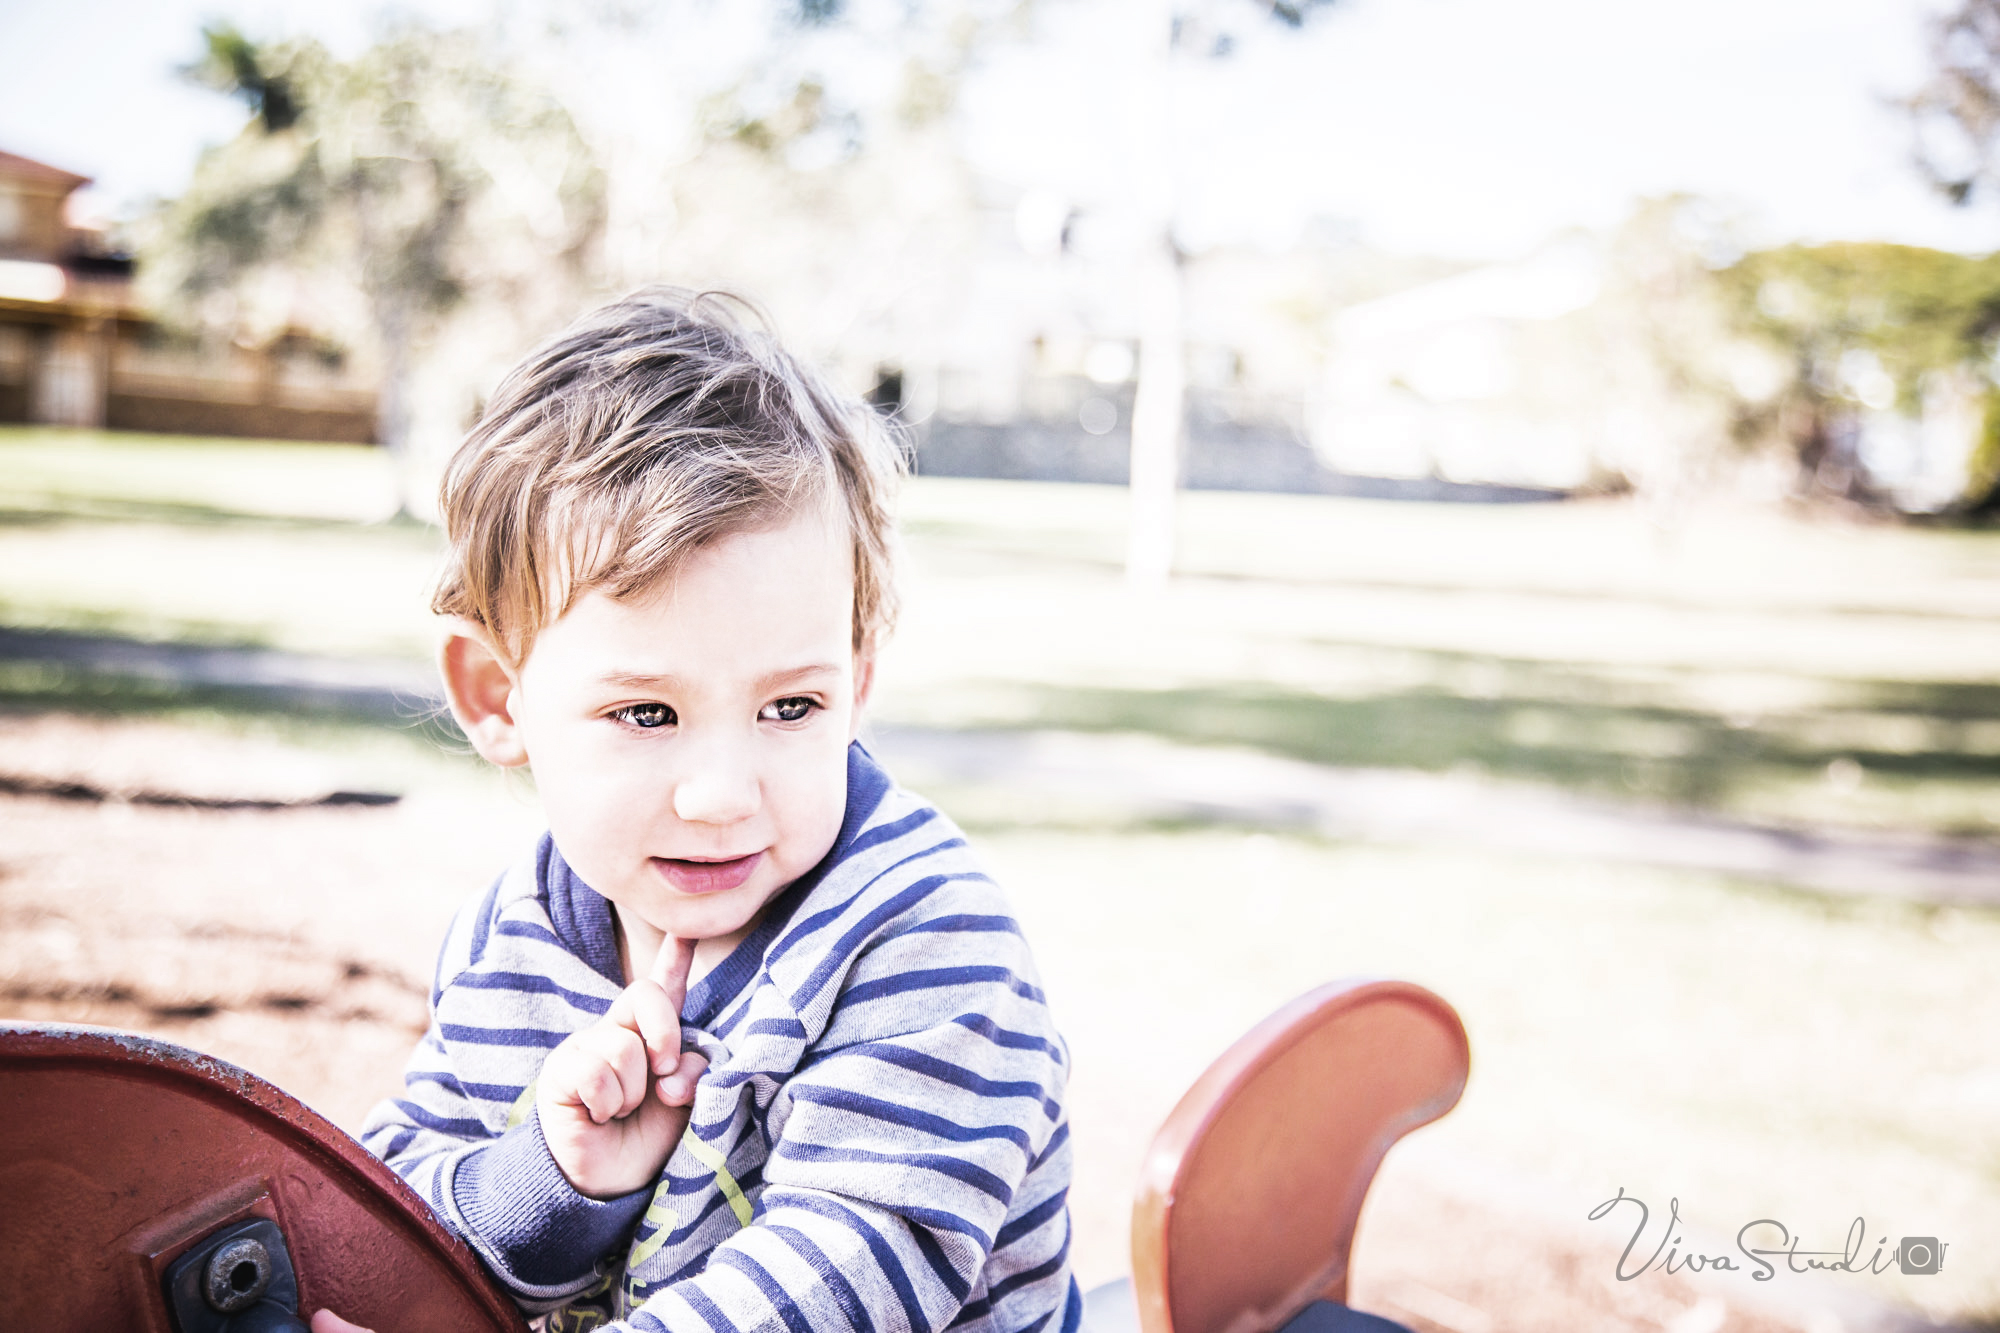 VivaStudio_Photography_Baby_Adam_Portrait_Brisbane_Family_2015_008